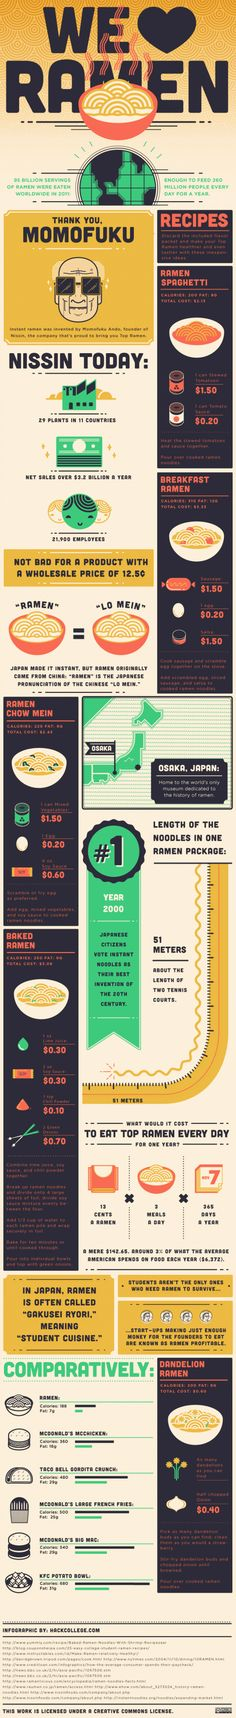 Some Facts about Ramen Noodles [infographic]